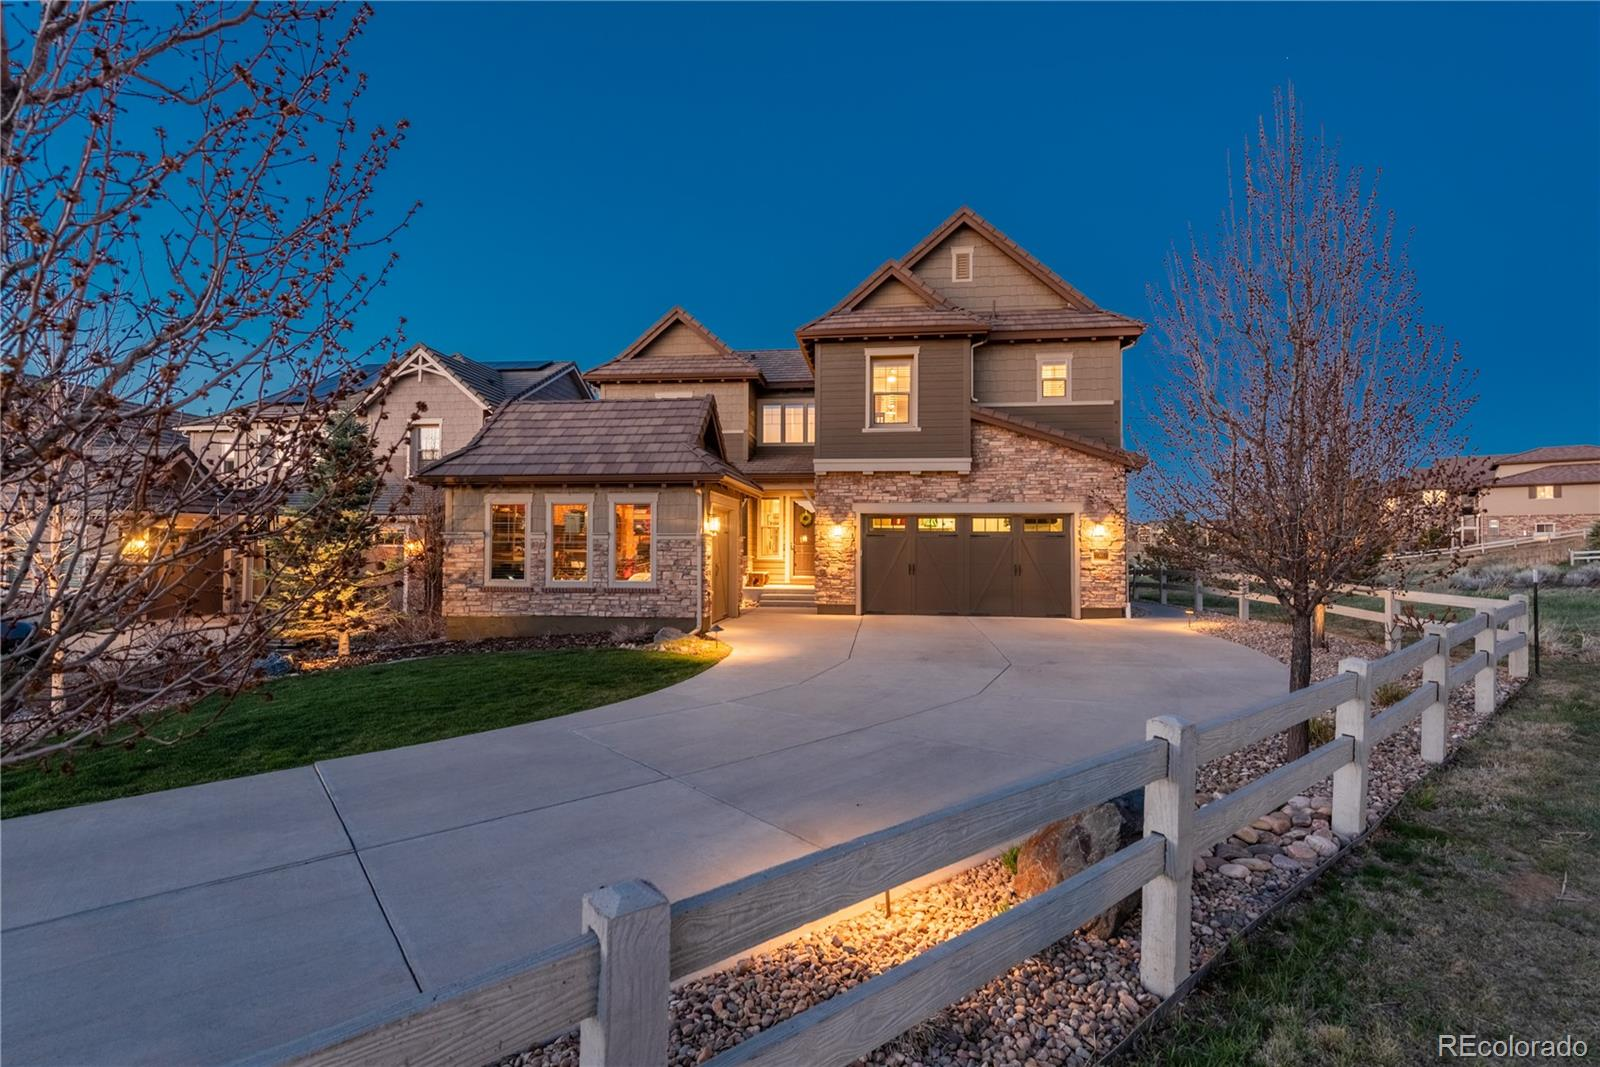 10662 Star Thistle Court, Highlands Ranch, CO 80126 - Highlands Ranch, CO real estate listing